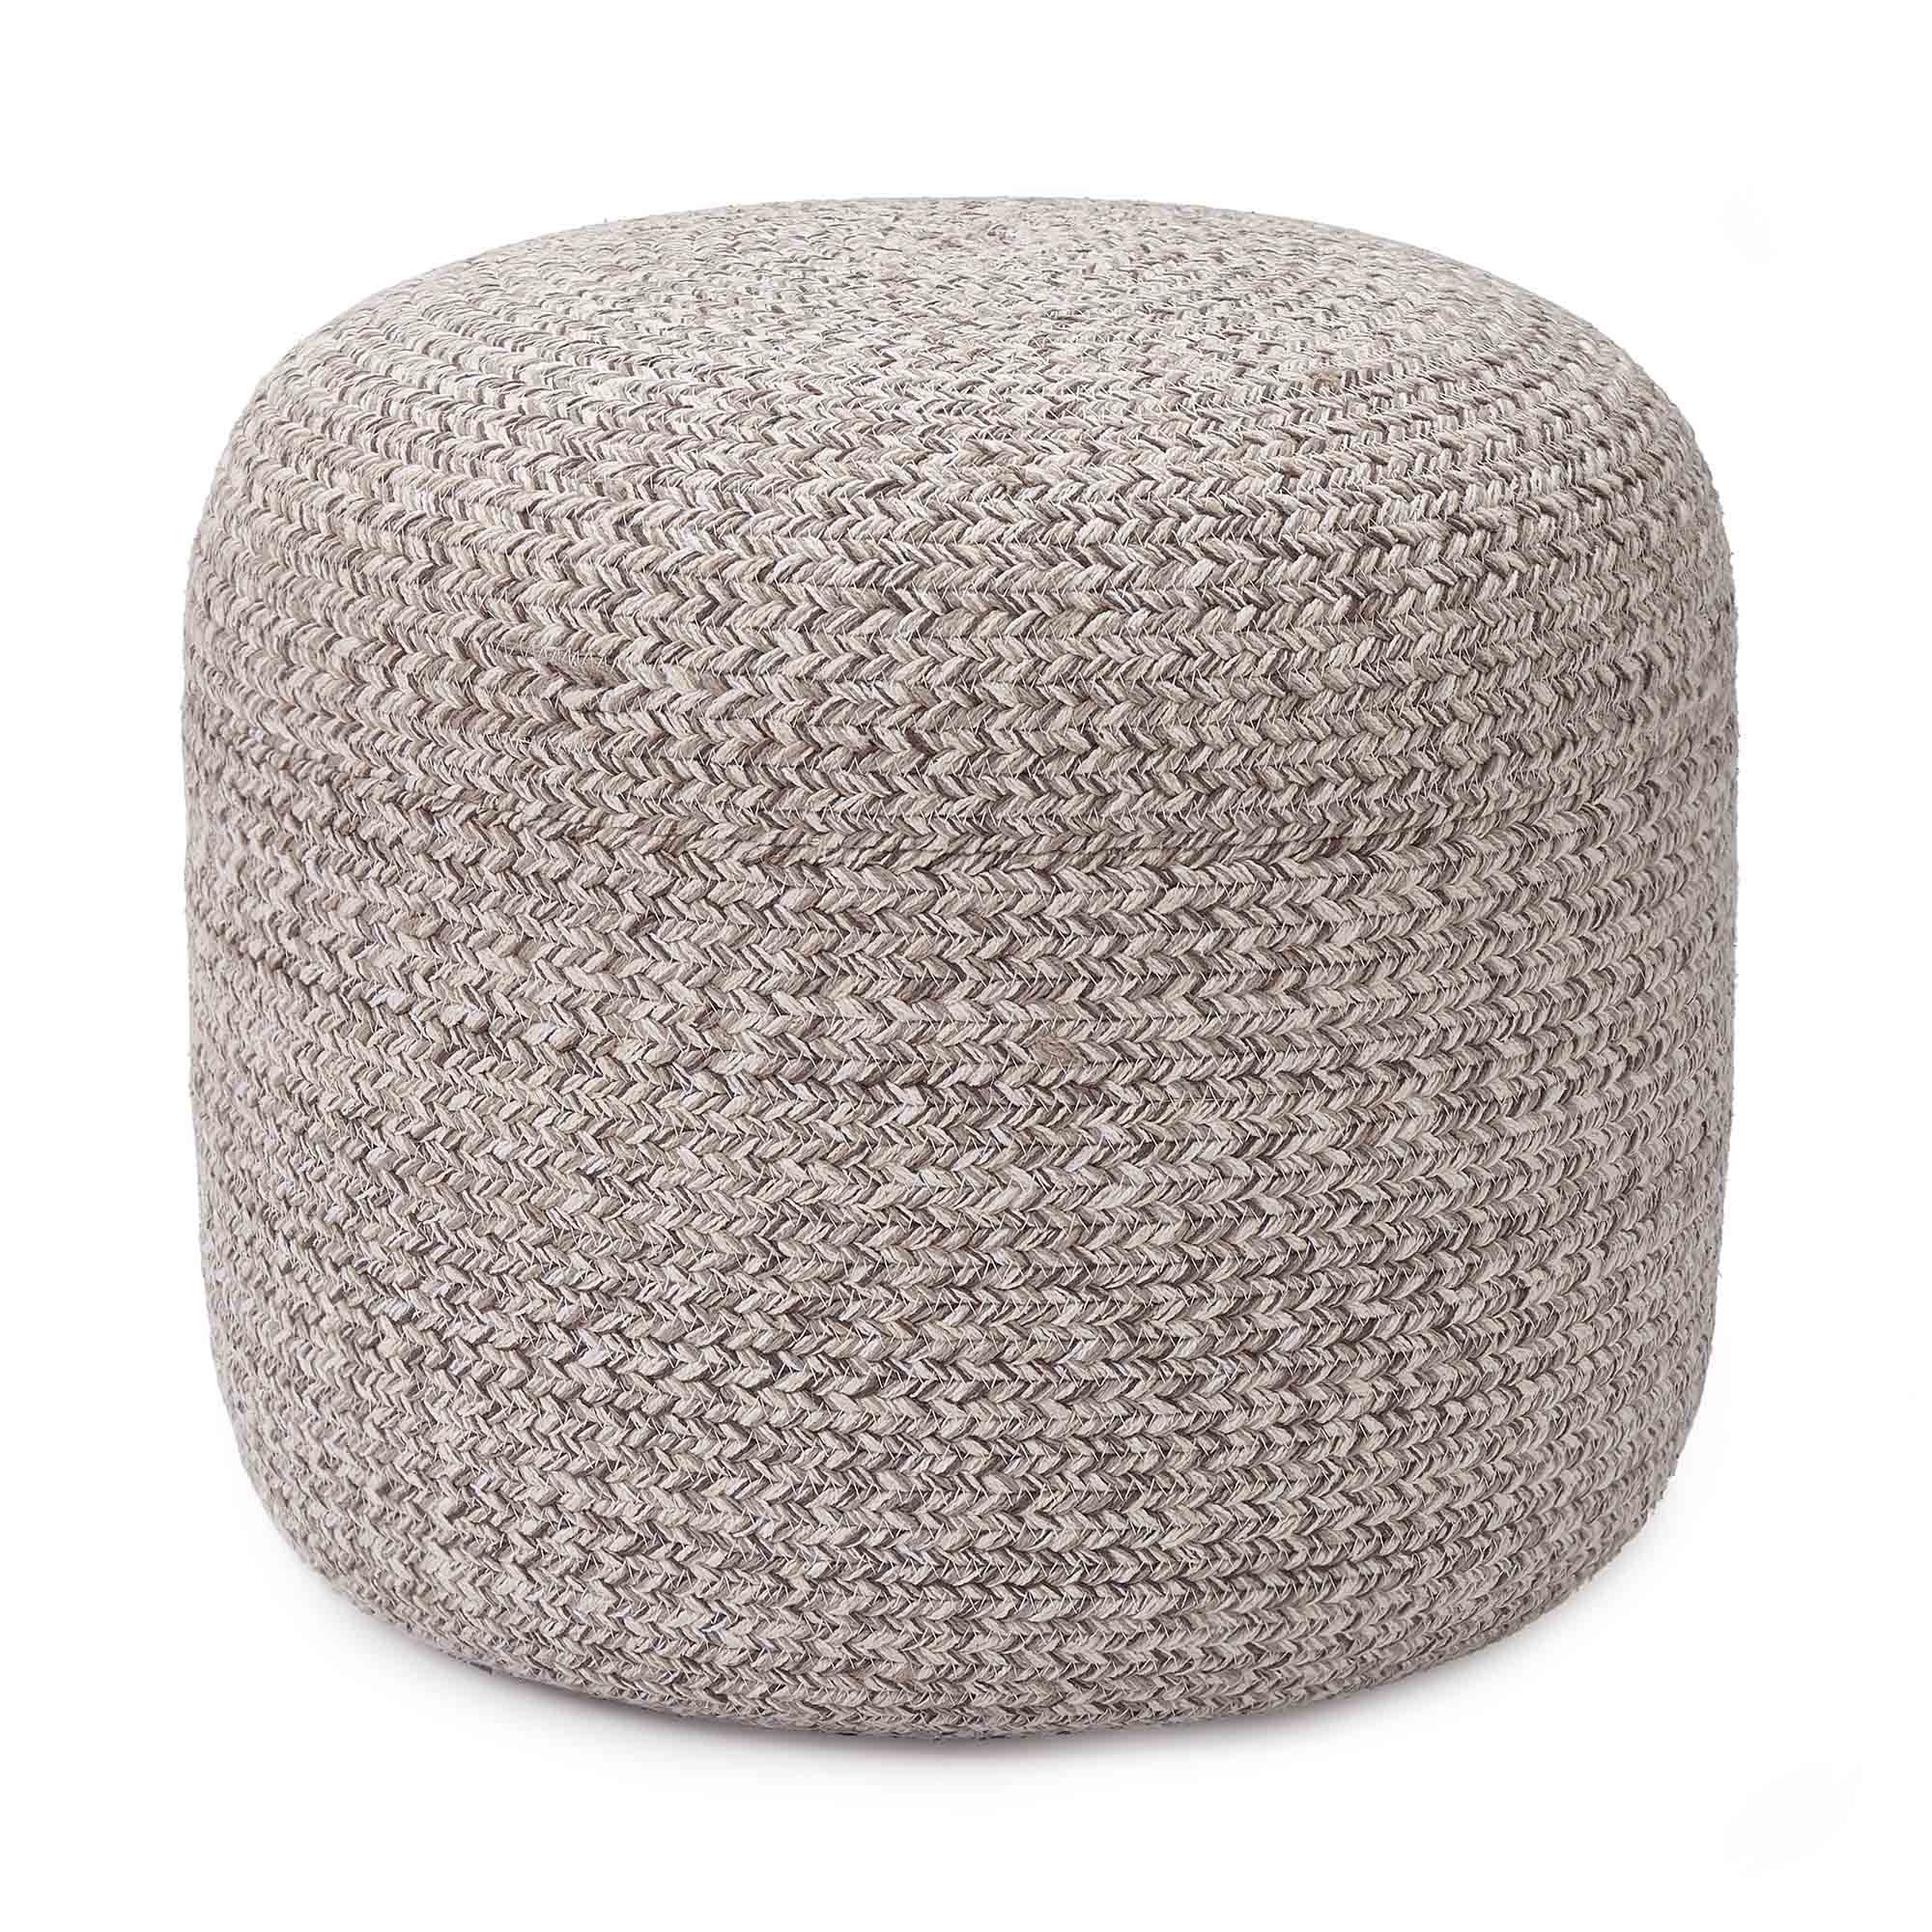 Shopal pouf, grey melange, 100% cotton